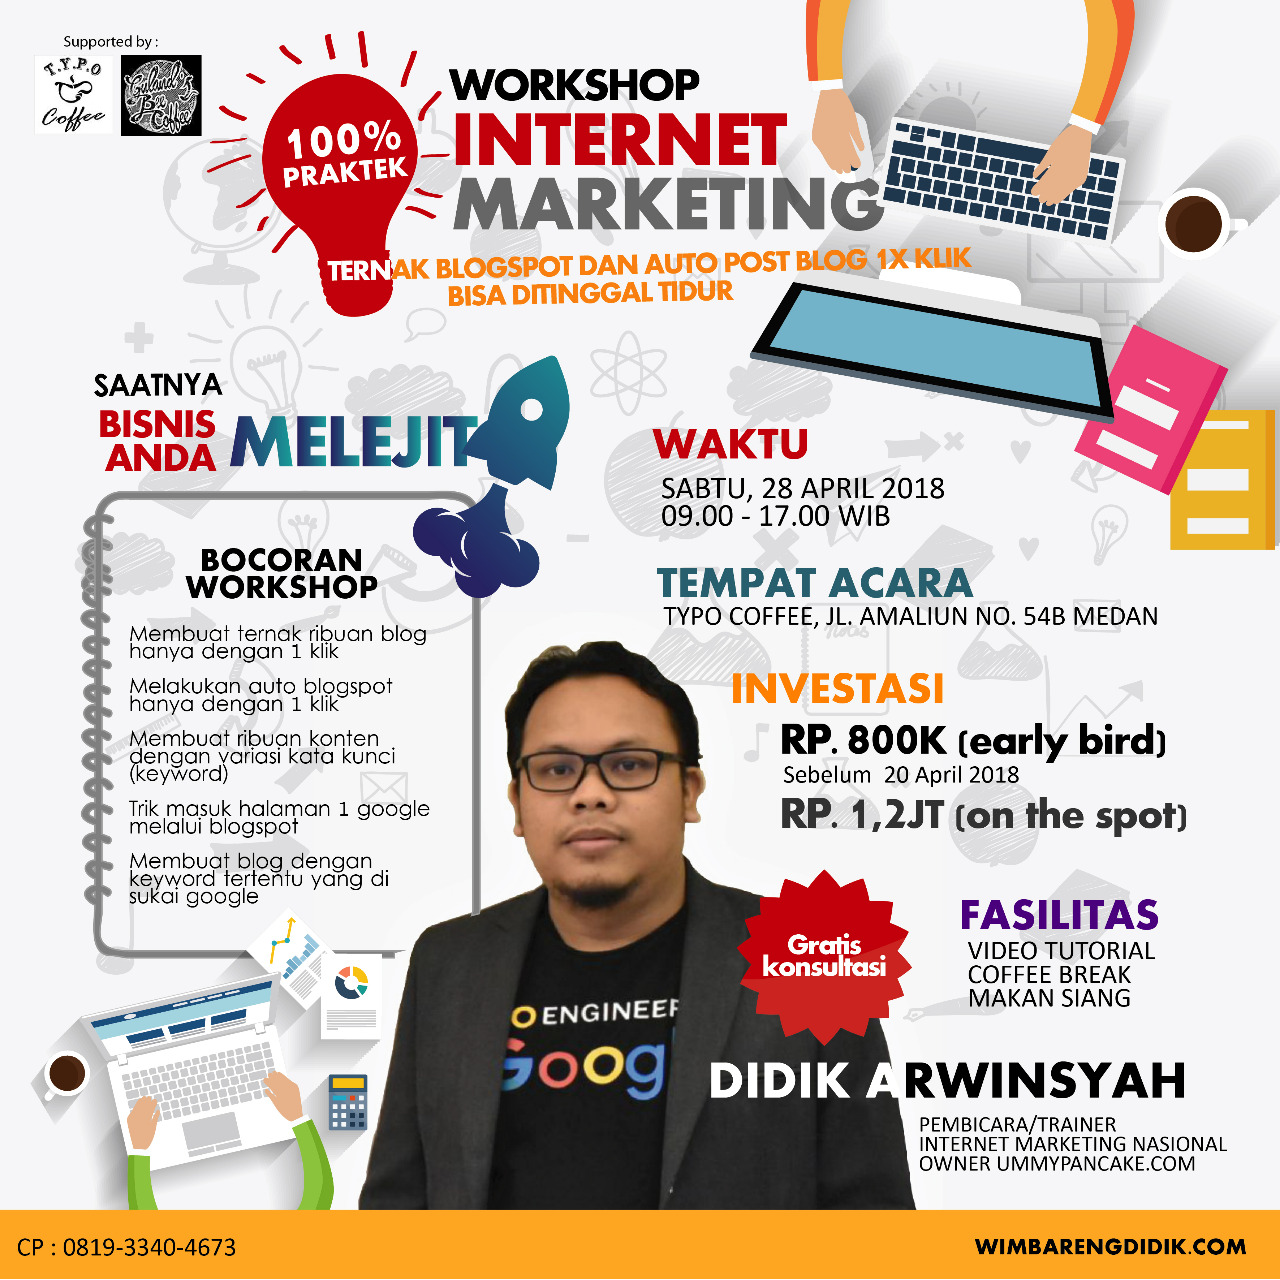 Workshop Internet Marketing Medan April 2018